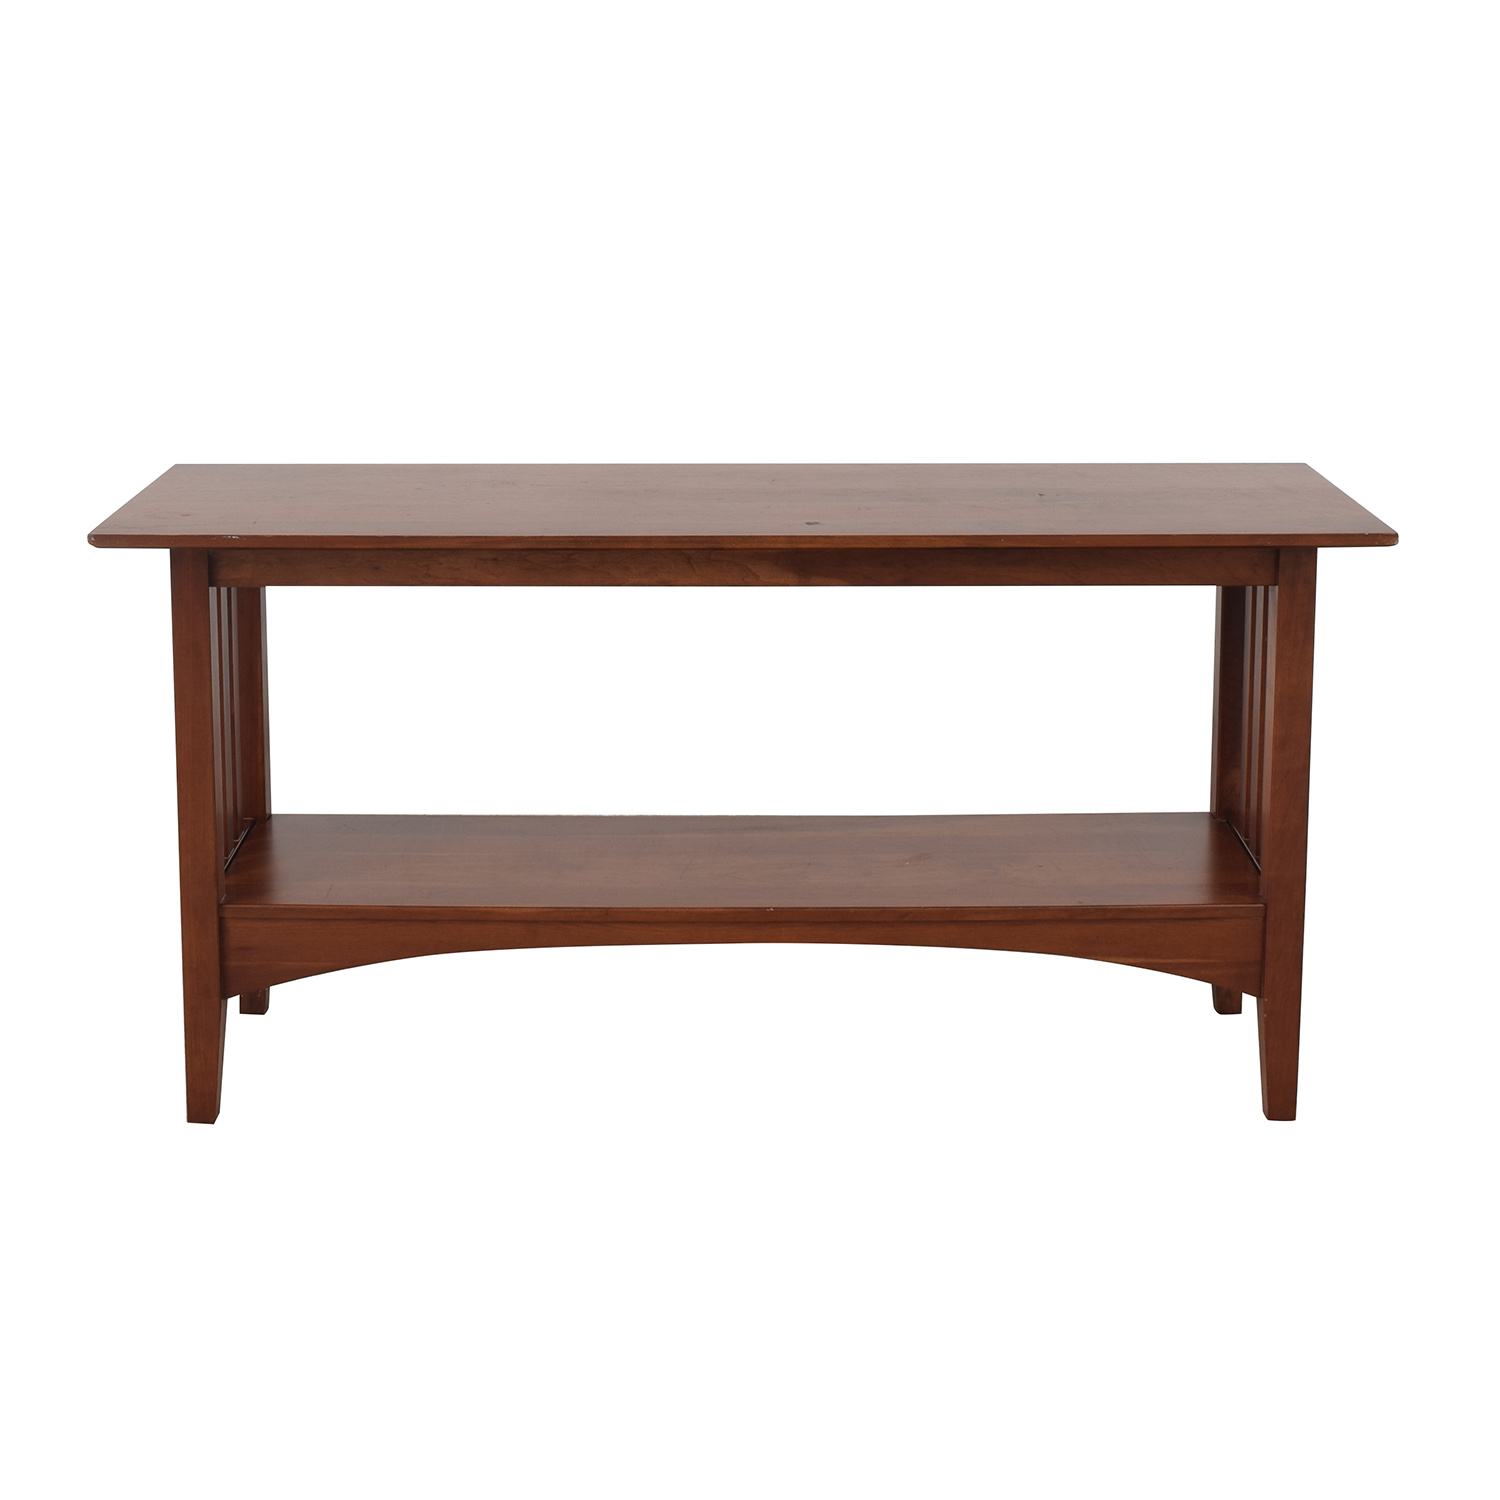 Ethan Allen Ethan Allen American Impressions Console Table nj